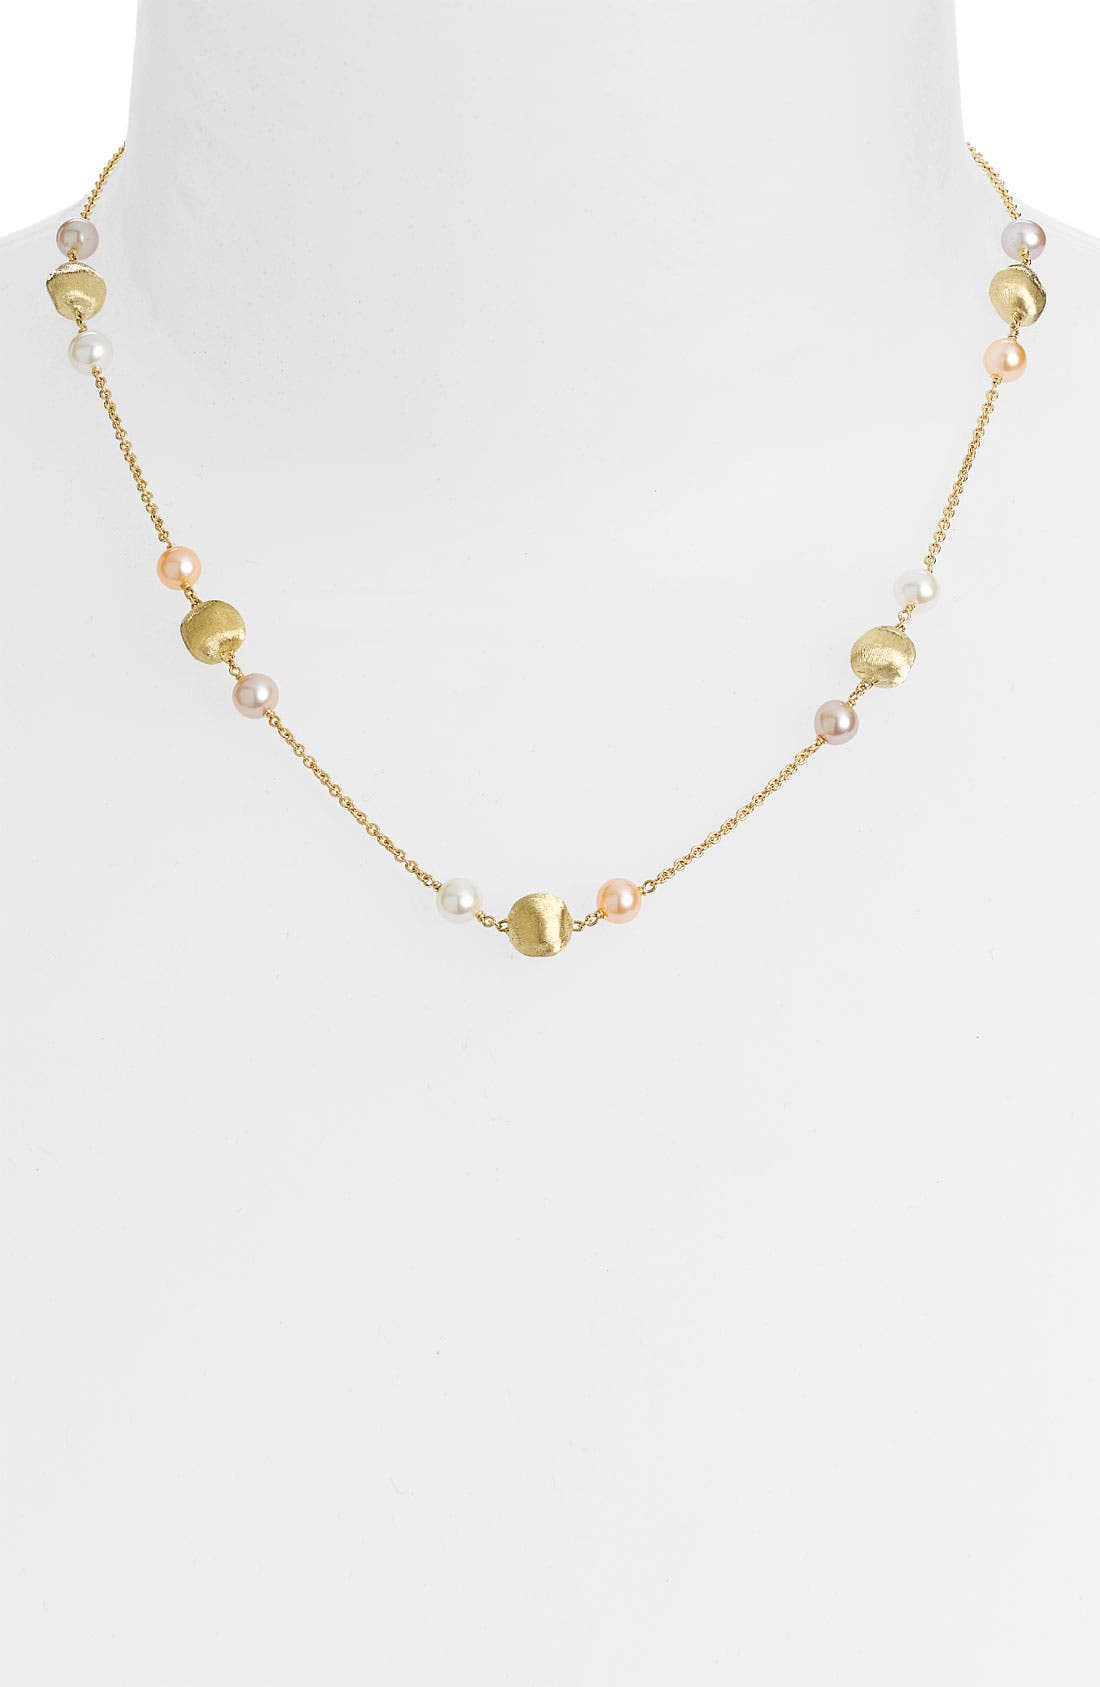 Main Image - Marco Bicego 'Africa Gold' Freshwater Pearl & Gold Station Necklace